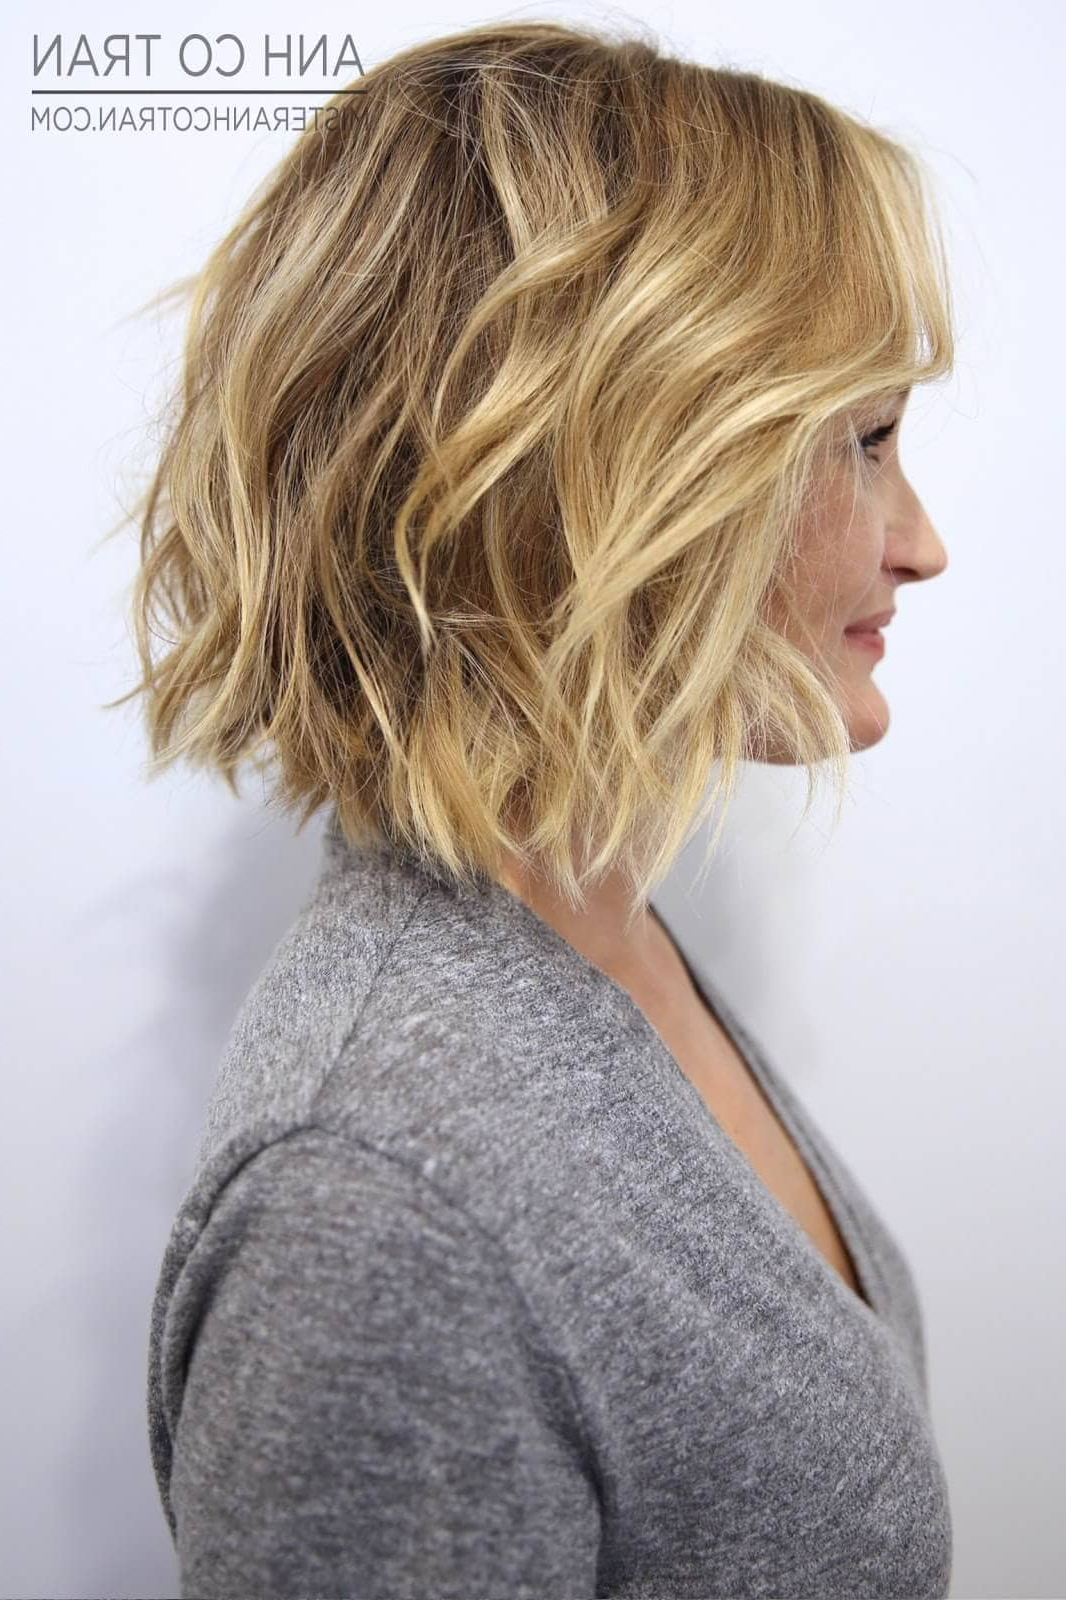 50 Ways To Wear Short Hair With Bangs For A Fresh New Look Pertaining To Short Haircuts With Long Side Bangs (View 5 of 25)